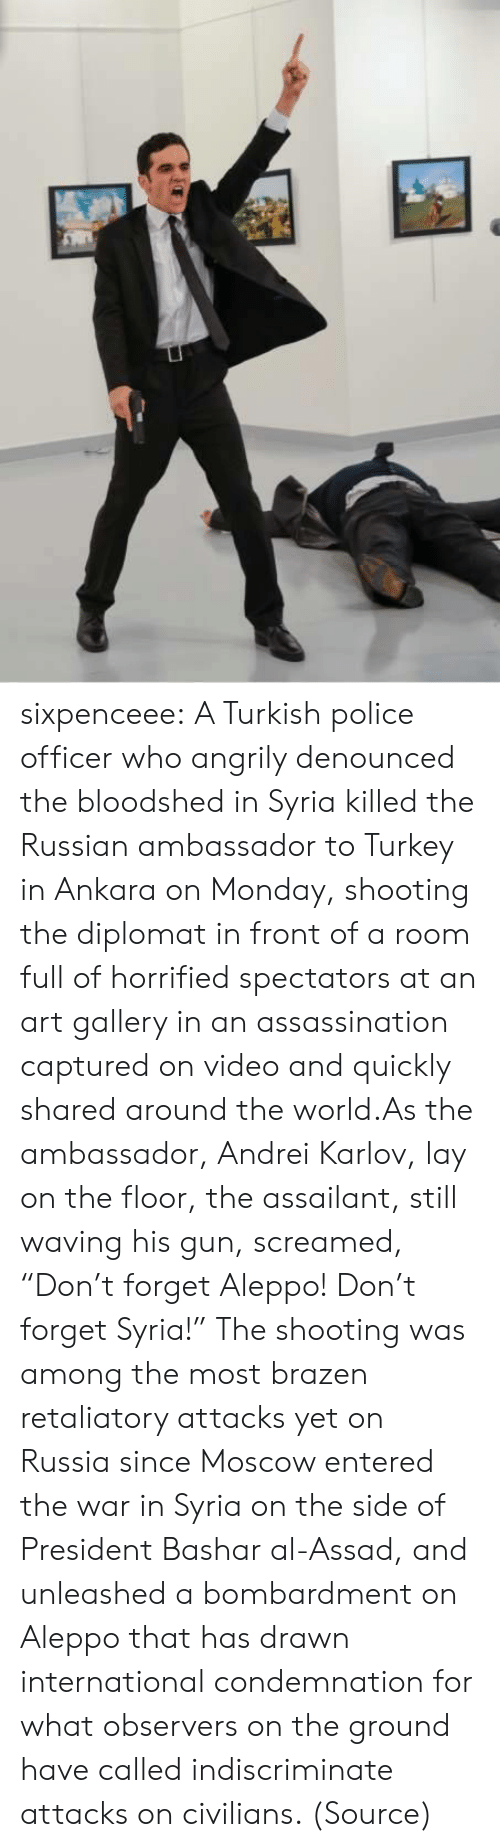 "Civilians: sixpenceee:  A Turkish police officer who angrily denounced the bloodshed in Syria killed the Russian ambassador to Turkey in Ankara on Monday, shooting the diplomat in front of a room full of horrified spectators at an art gallery in an assassination captured on video and quickly shared around the world.As the ambassador, Andrei Karlov, lay on the floor, the assailant, still waving his gun, screamed, ""Don't forget Aleppo! Don't forget Syria!"" The shooting was among the most brazen retaliatory attacks yet on Russia since Moscow entered the war in Syria on the side of President Bashar al-Assad, and unleashed a bombardment on Aleppo that has drawn international condemnation for what observers on the ground have called indiscriminate attacks on civilians. (Source)"